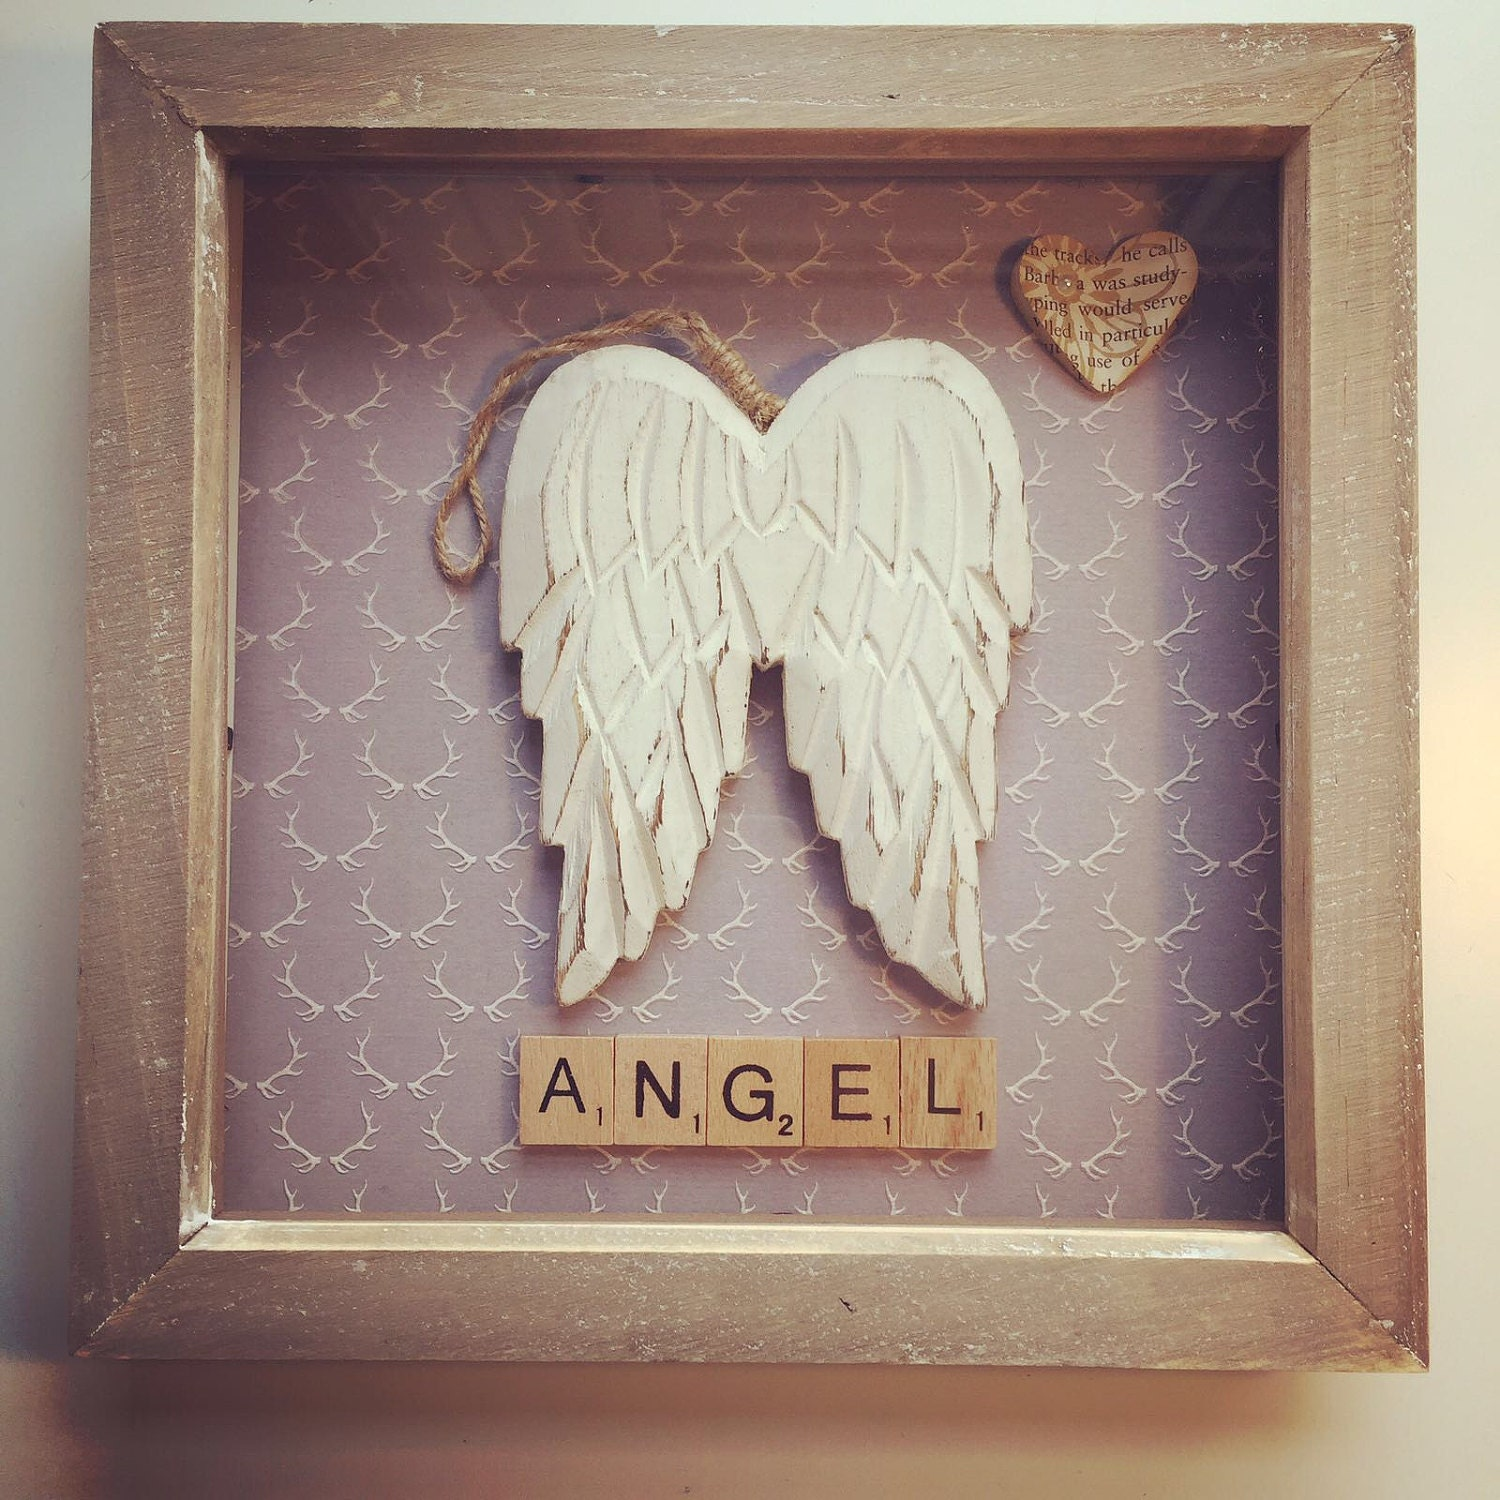 Angel wings picture frame from scrabbledabble99 on etsy studio angel wings picture frame sold by scrabbledabble99 jeuxipadfo Image collections